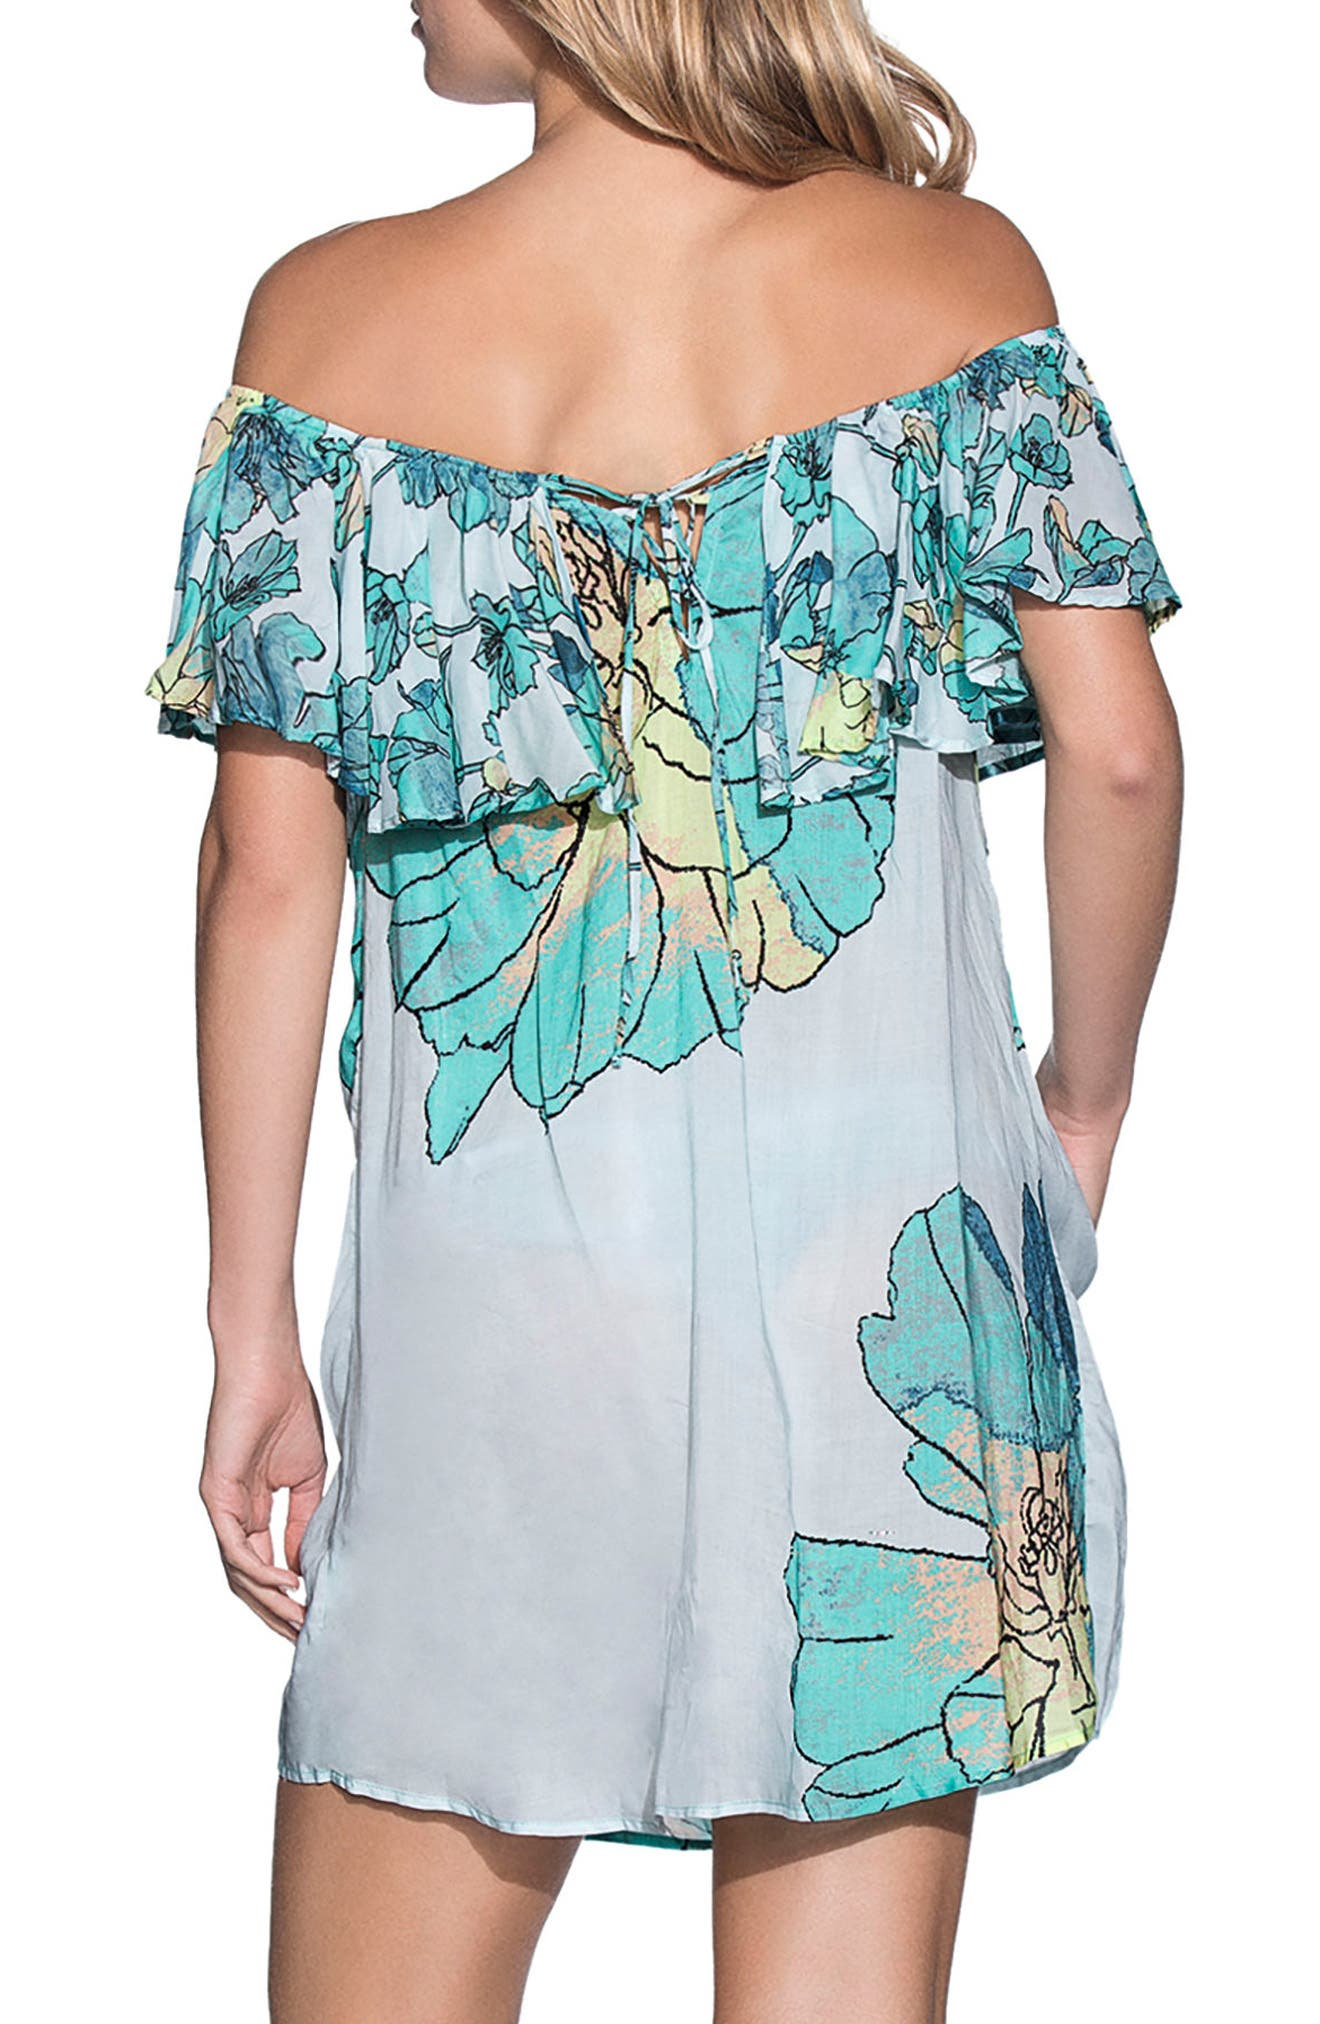 Laughing Leaves Cover-Up Dress,                             Alternate thumbnail 2, color,                             Teal Multi